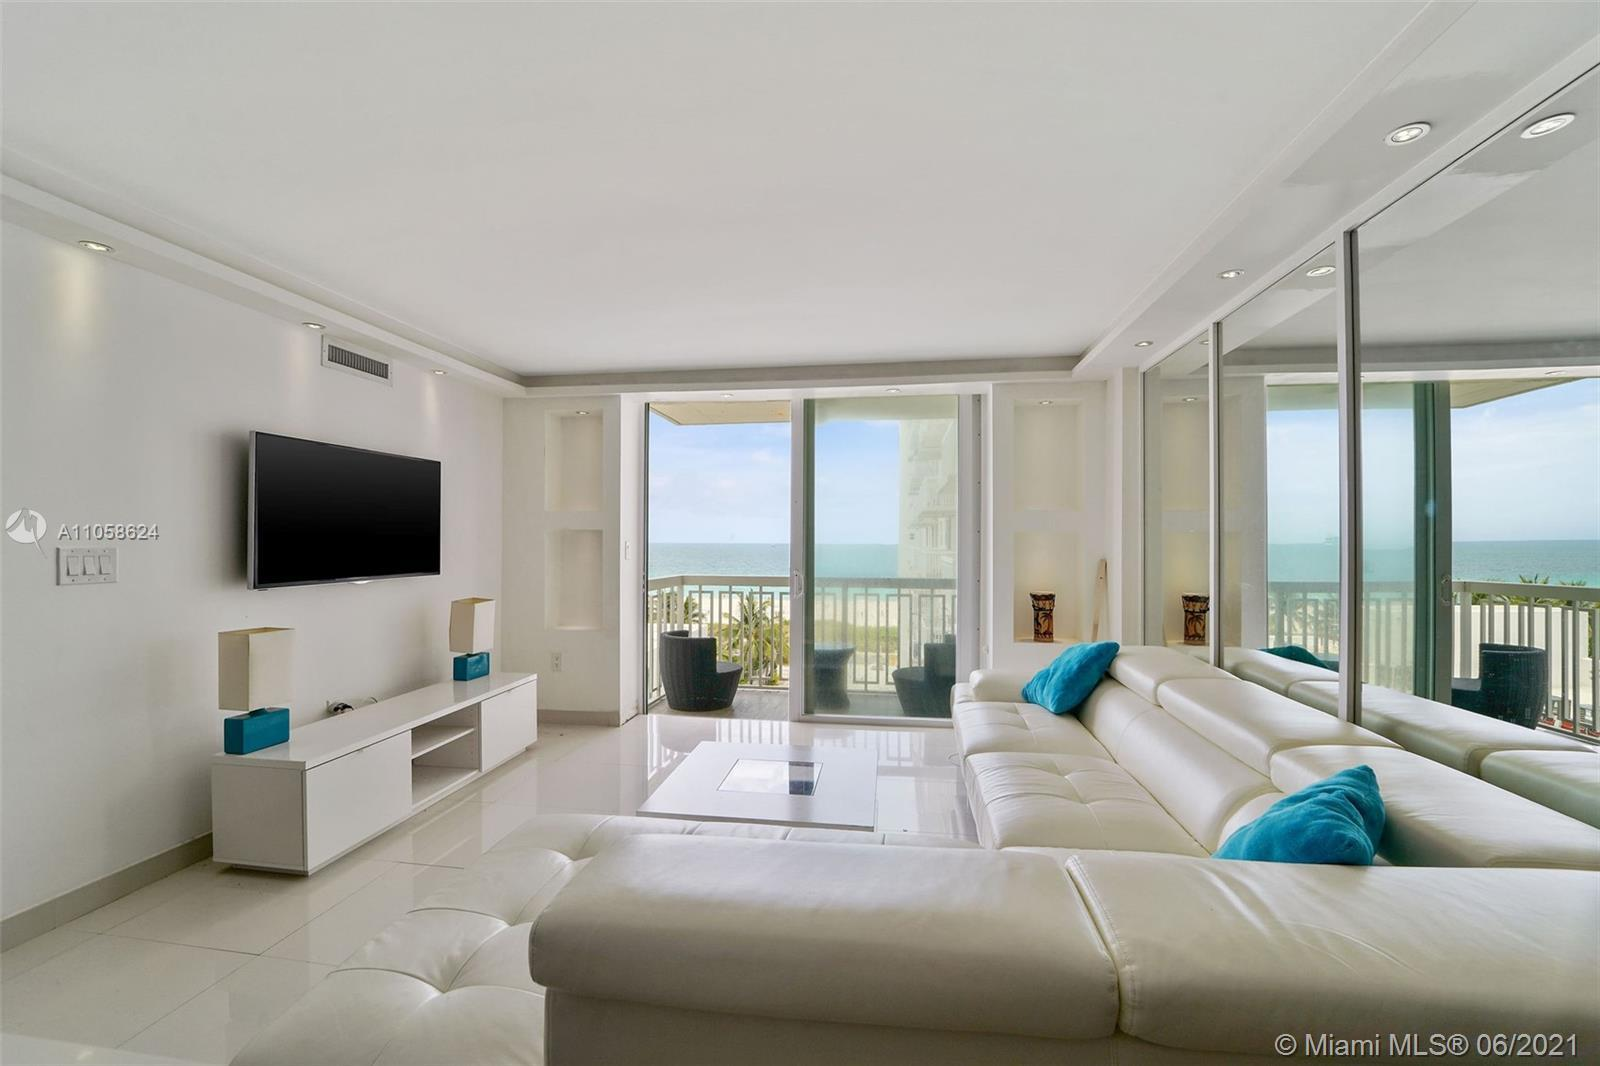 The perfect Pied-à-Terre! This is everything you've been Looking for! A perfect 2 bed/2 bath, South